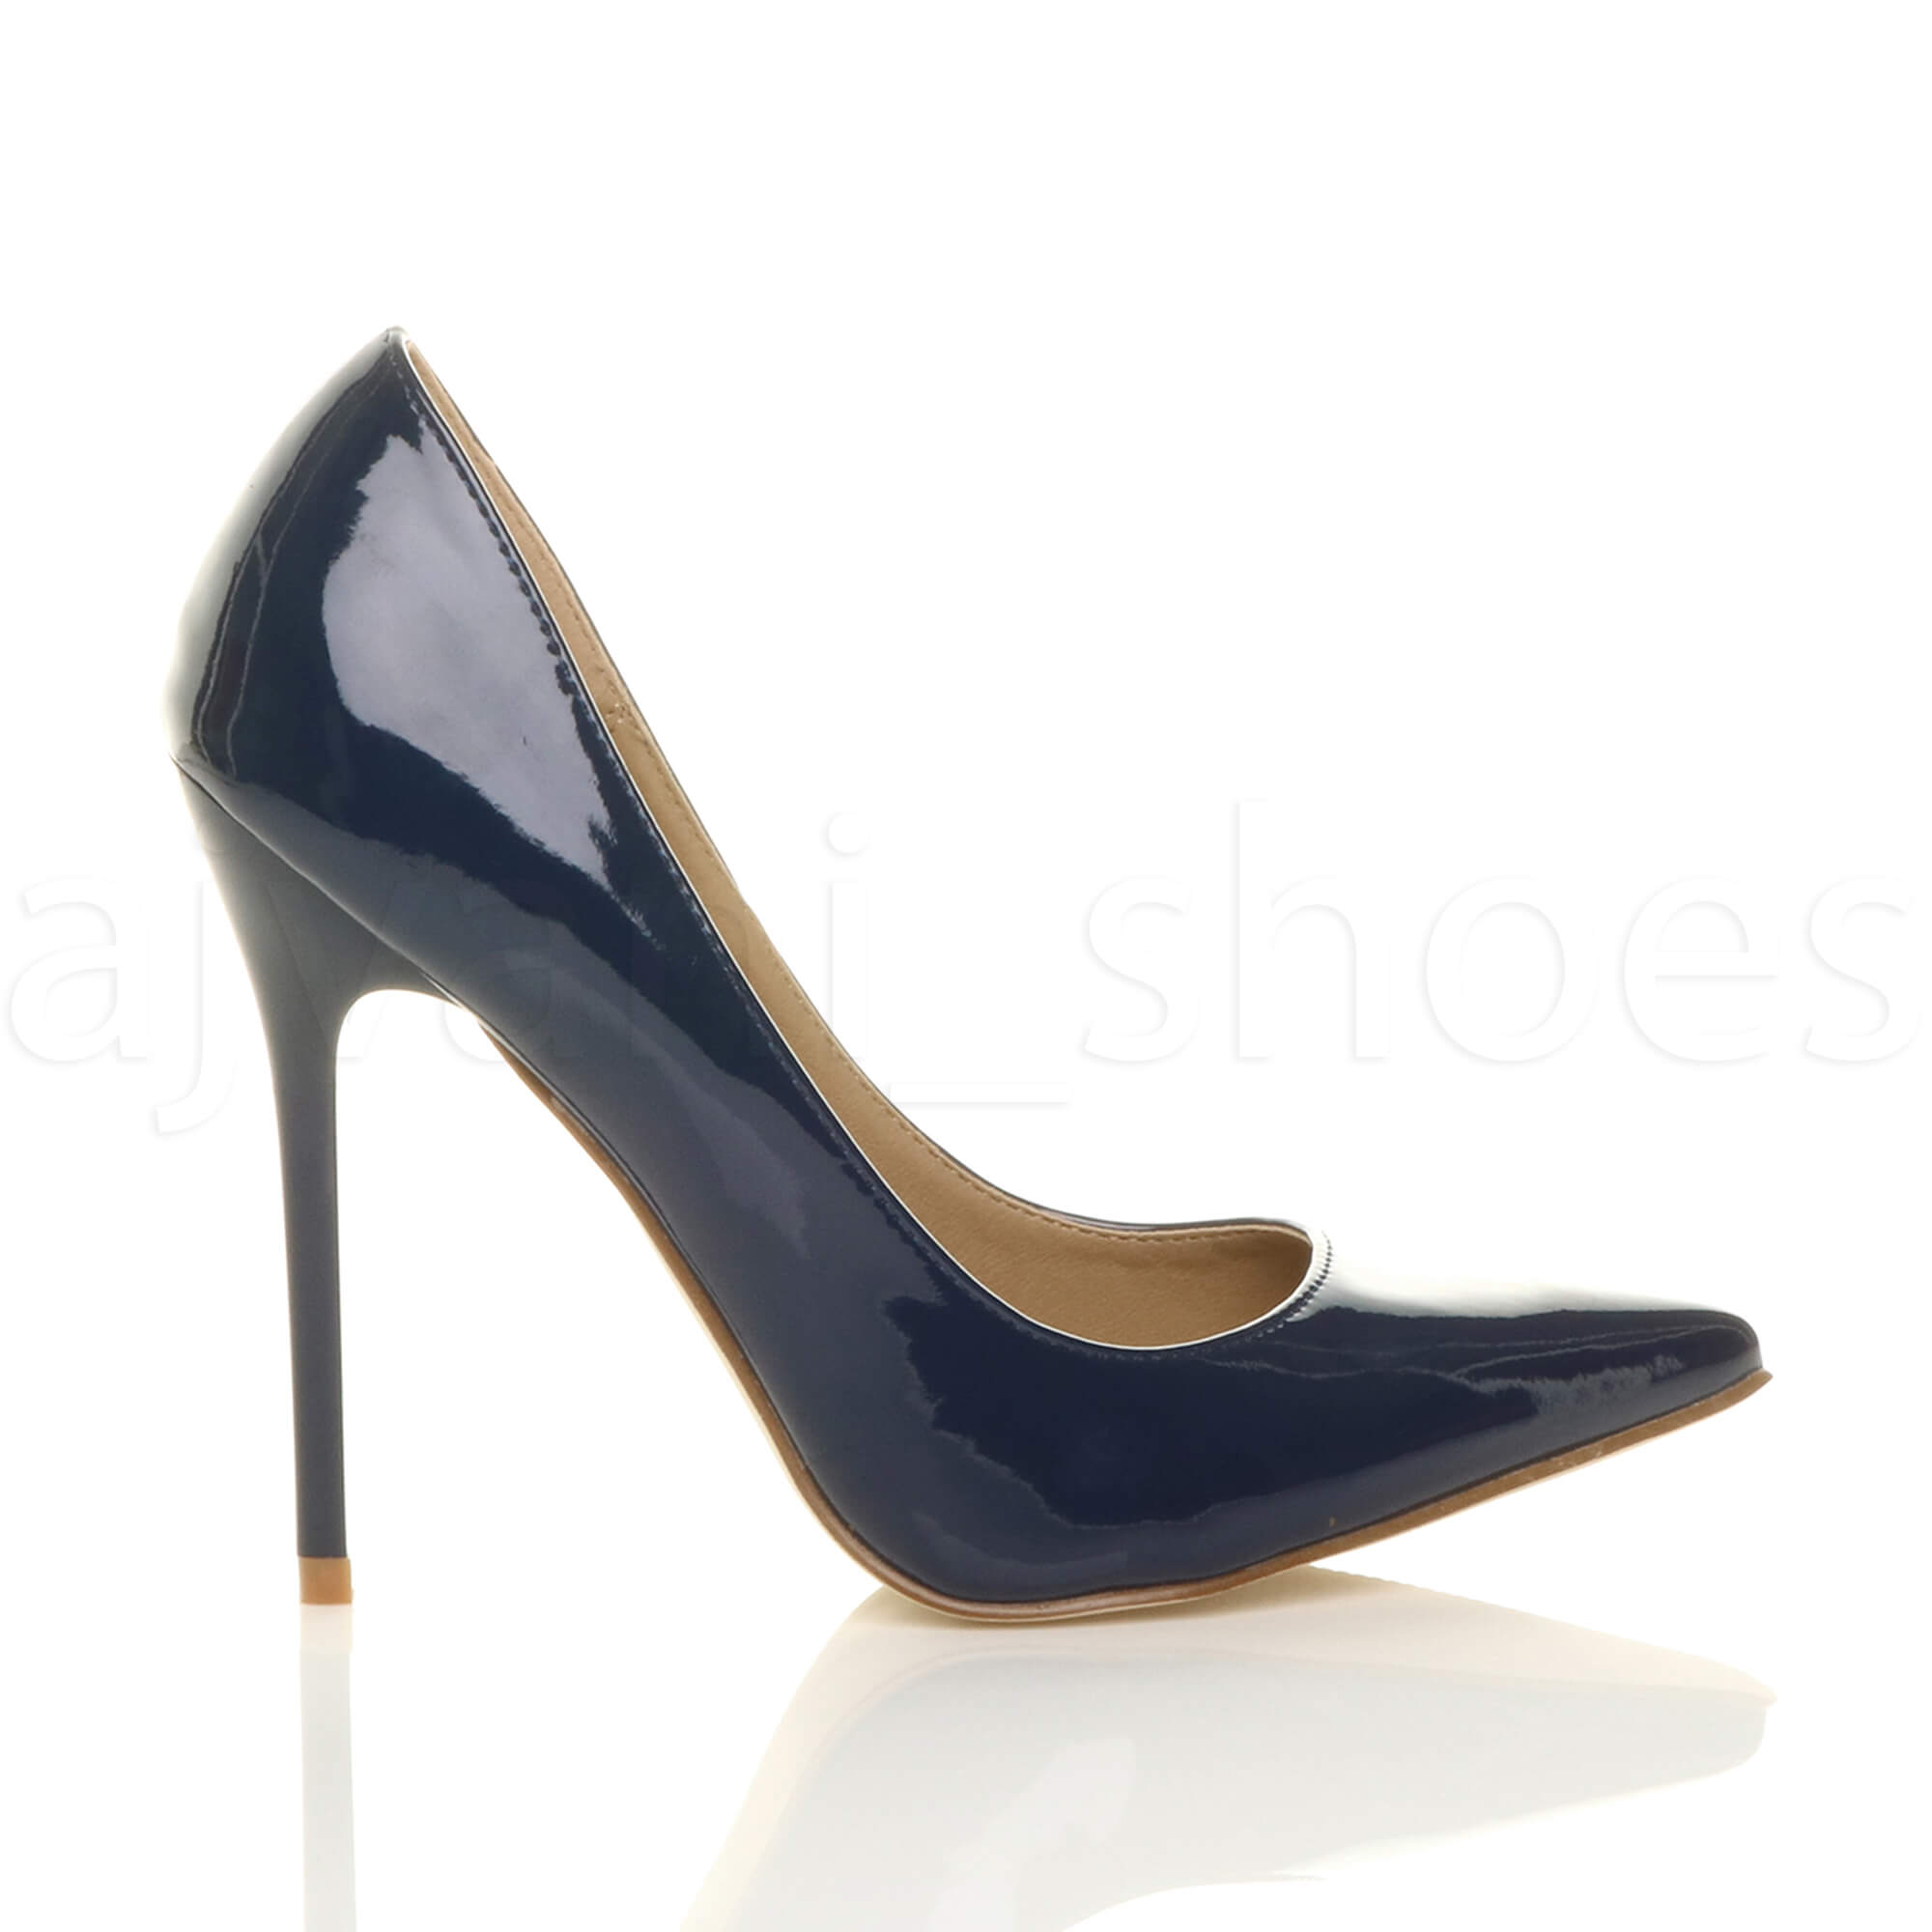 WOMENS-LADIES-HIGH-HEEL-POINTED-CONTRAST-COURT-SMART-PARTY-WORK-SHOES-PUMPS-SIZE thumbnail 113